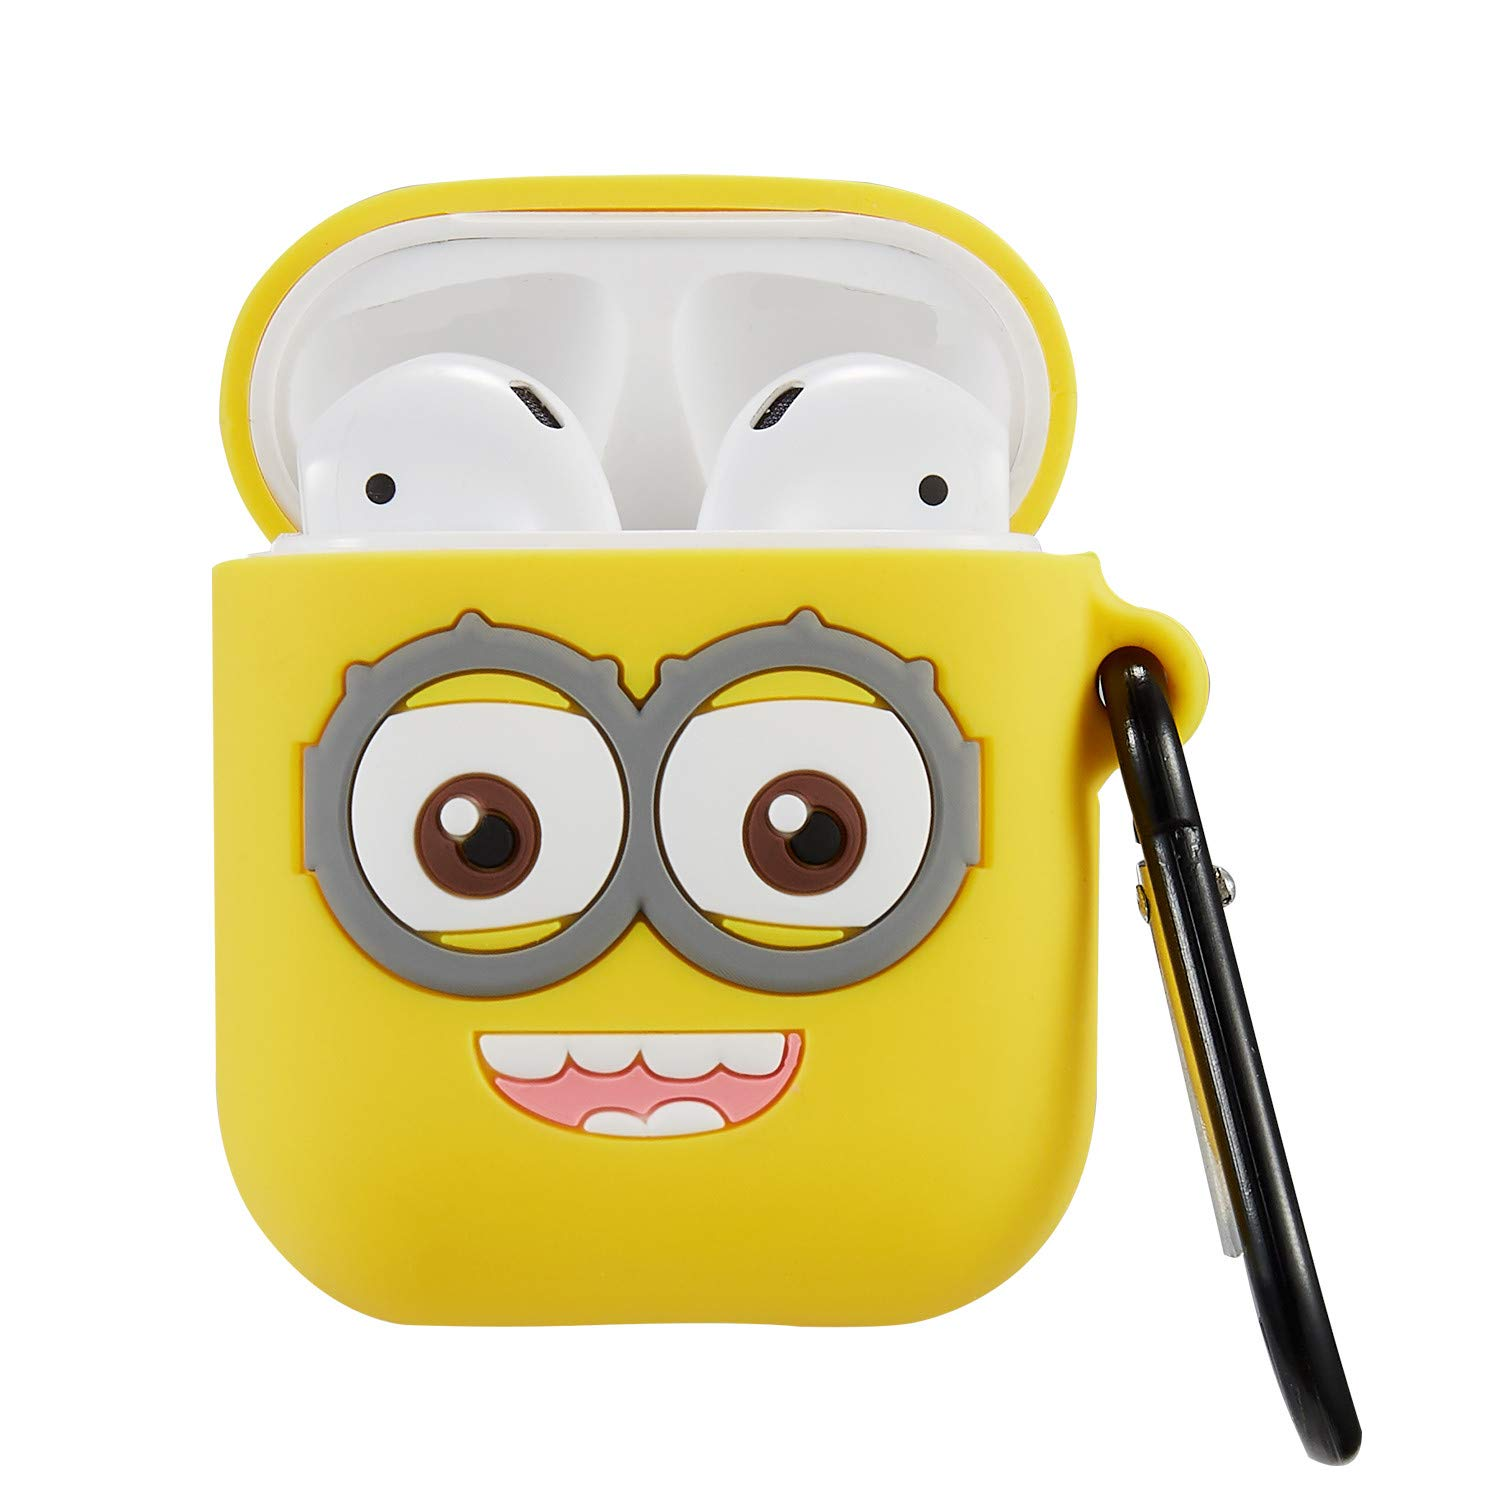 4a07a65fc Punswan Two Eye Yellow Airpod Case for Apple Airpods 1&2,Cute 3D Funny  Cartoon Character Soft Silicone Catalyst Cover,Kawaii Fun Cool Keychain  Design Skin ...